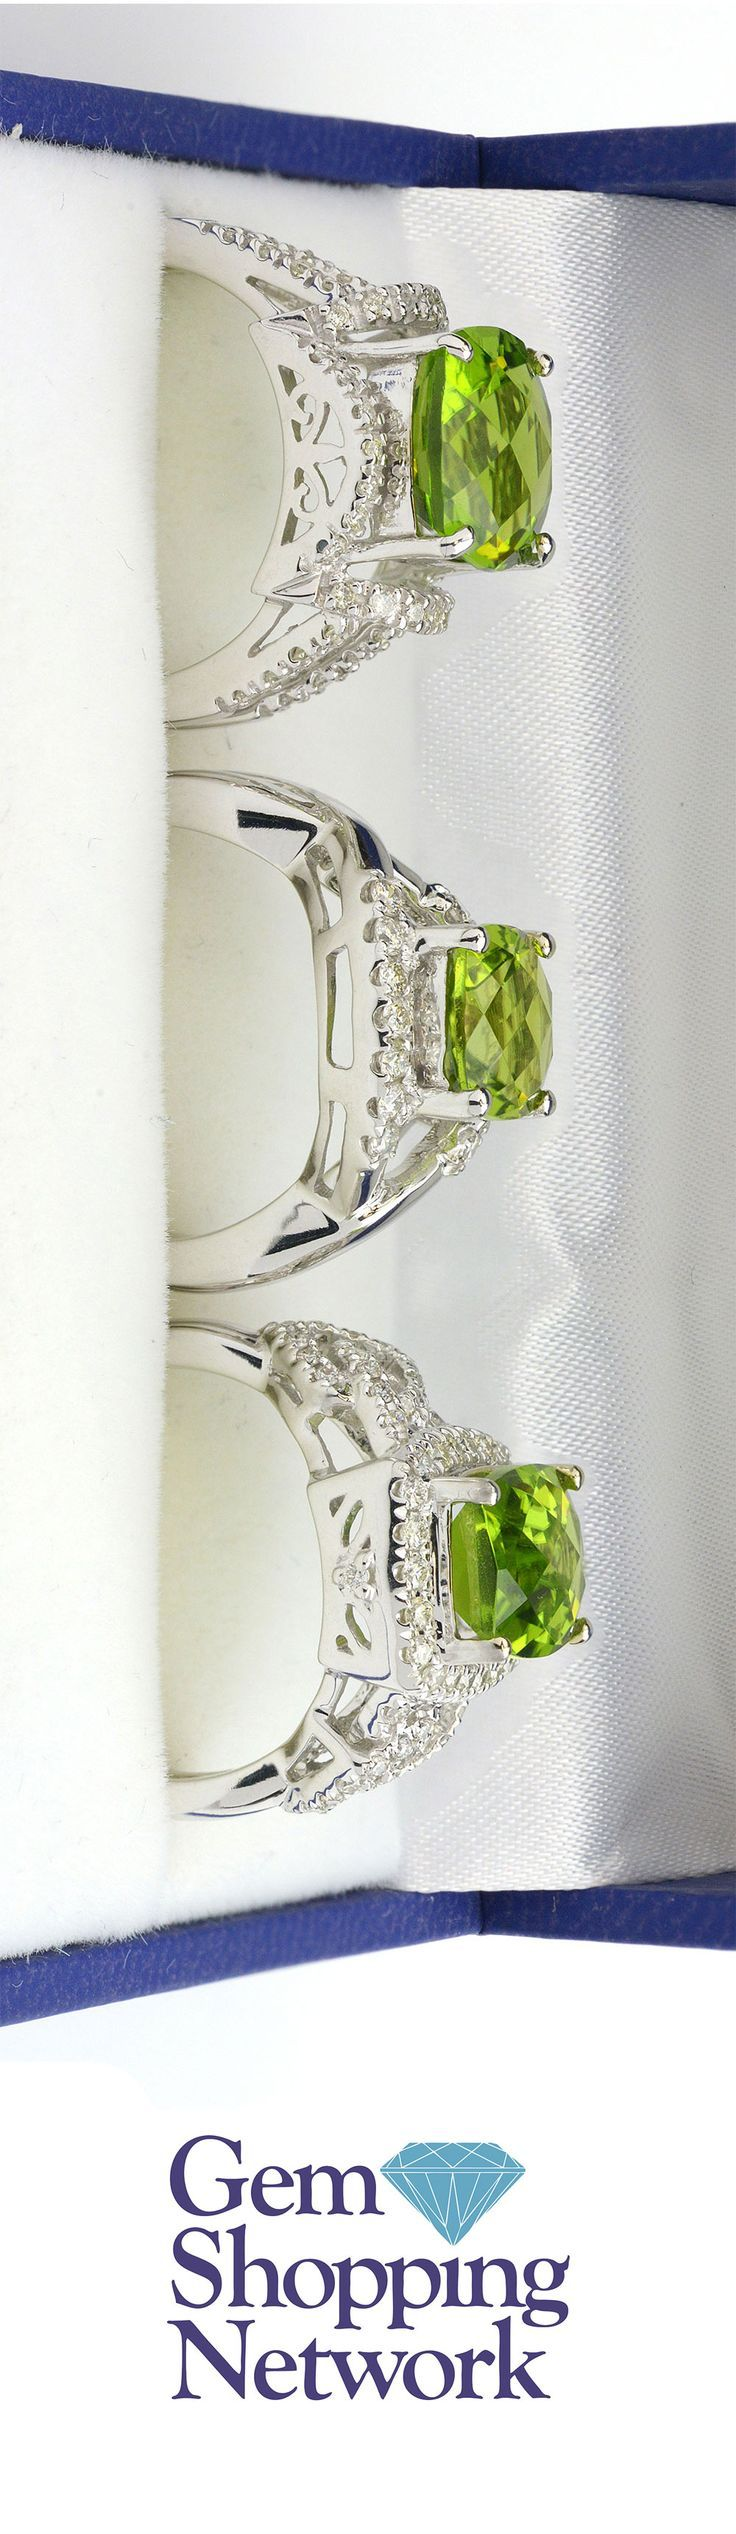 Celebrate your August birthday with Peridot rings. Peridot is the birthstone of August and is a stunning green gemstone! Tune into Gem Shopping Network to see more loose gemstones and jewelry any time of day!